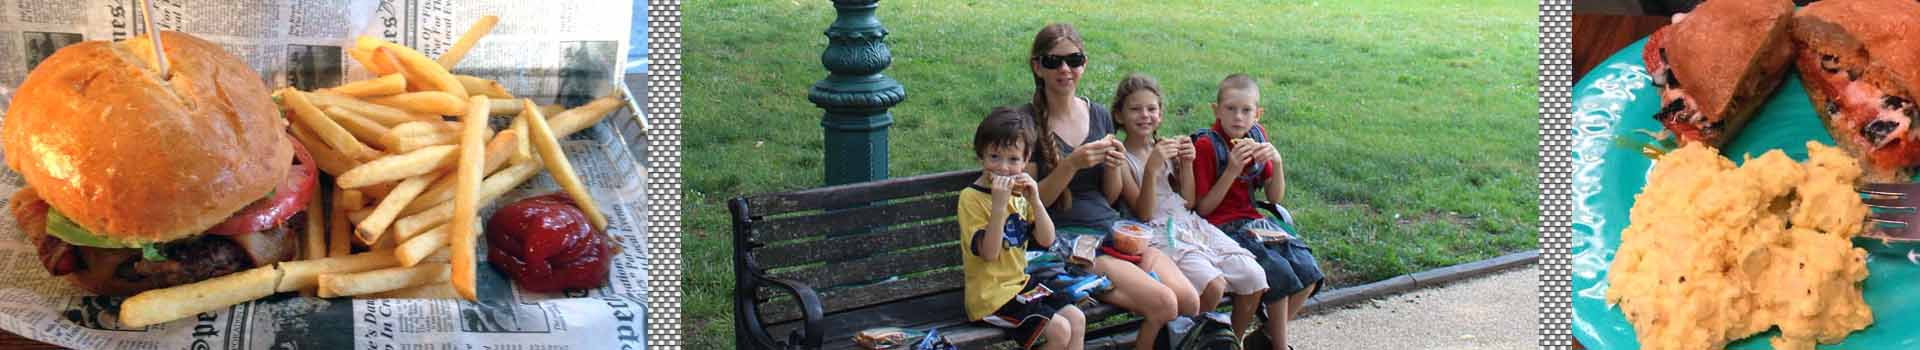 Planning a Family Vacation: 11 Ideas for Eating Cheap